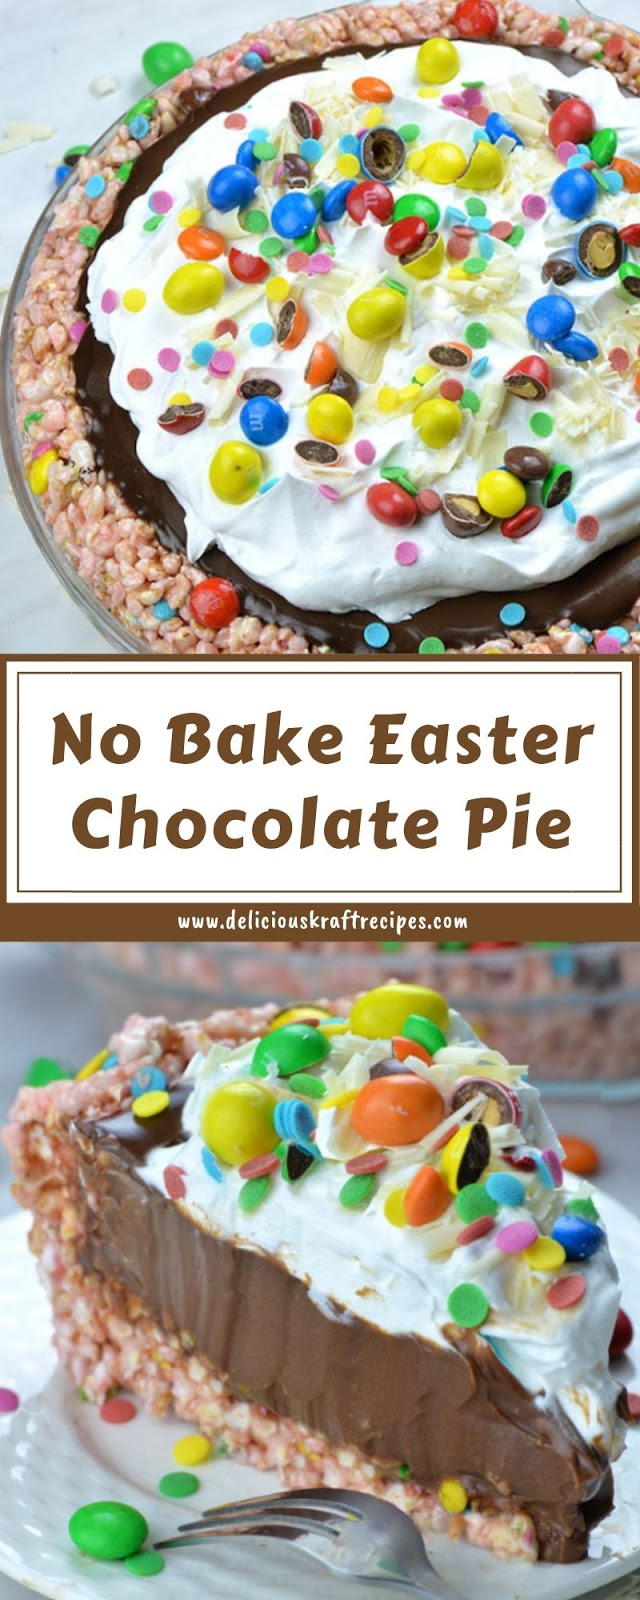 No Bake Easter Chocolate Pie